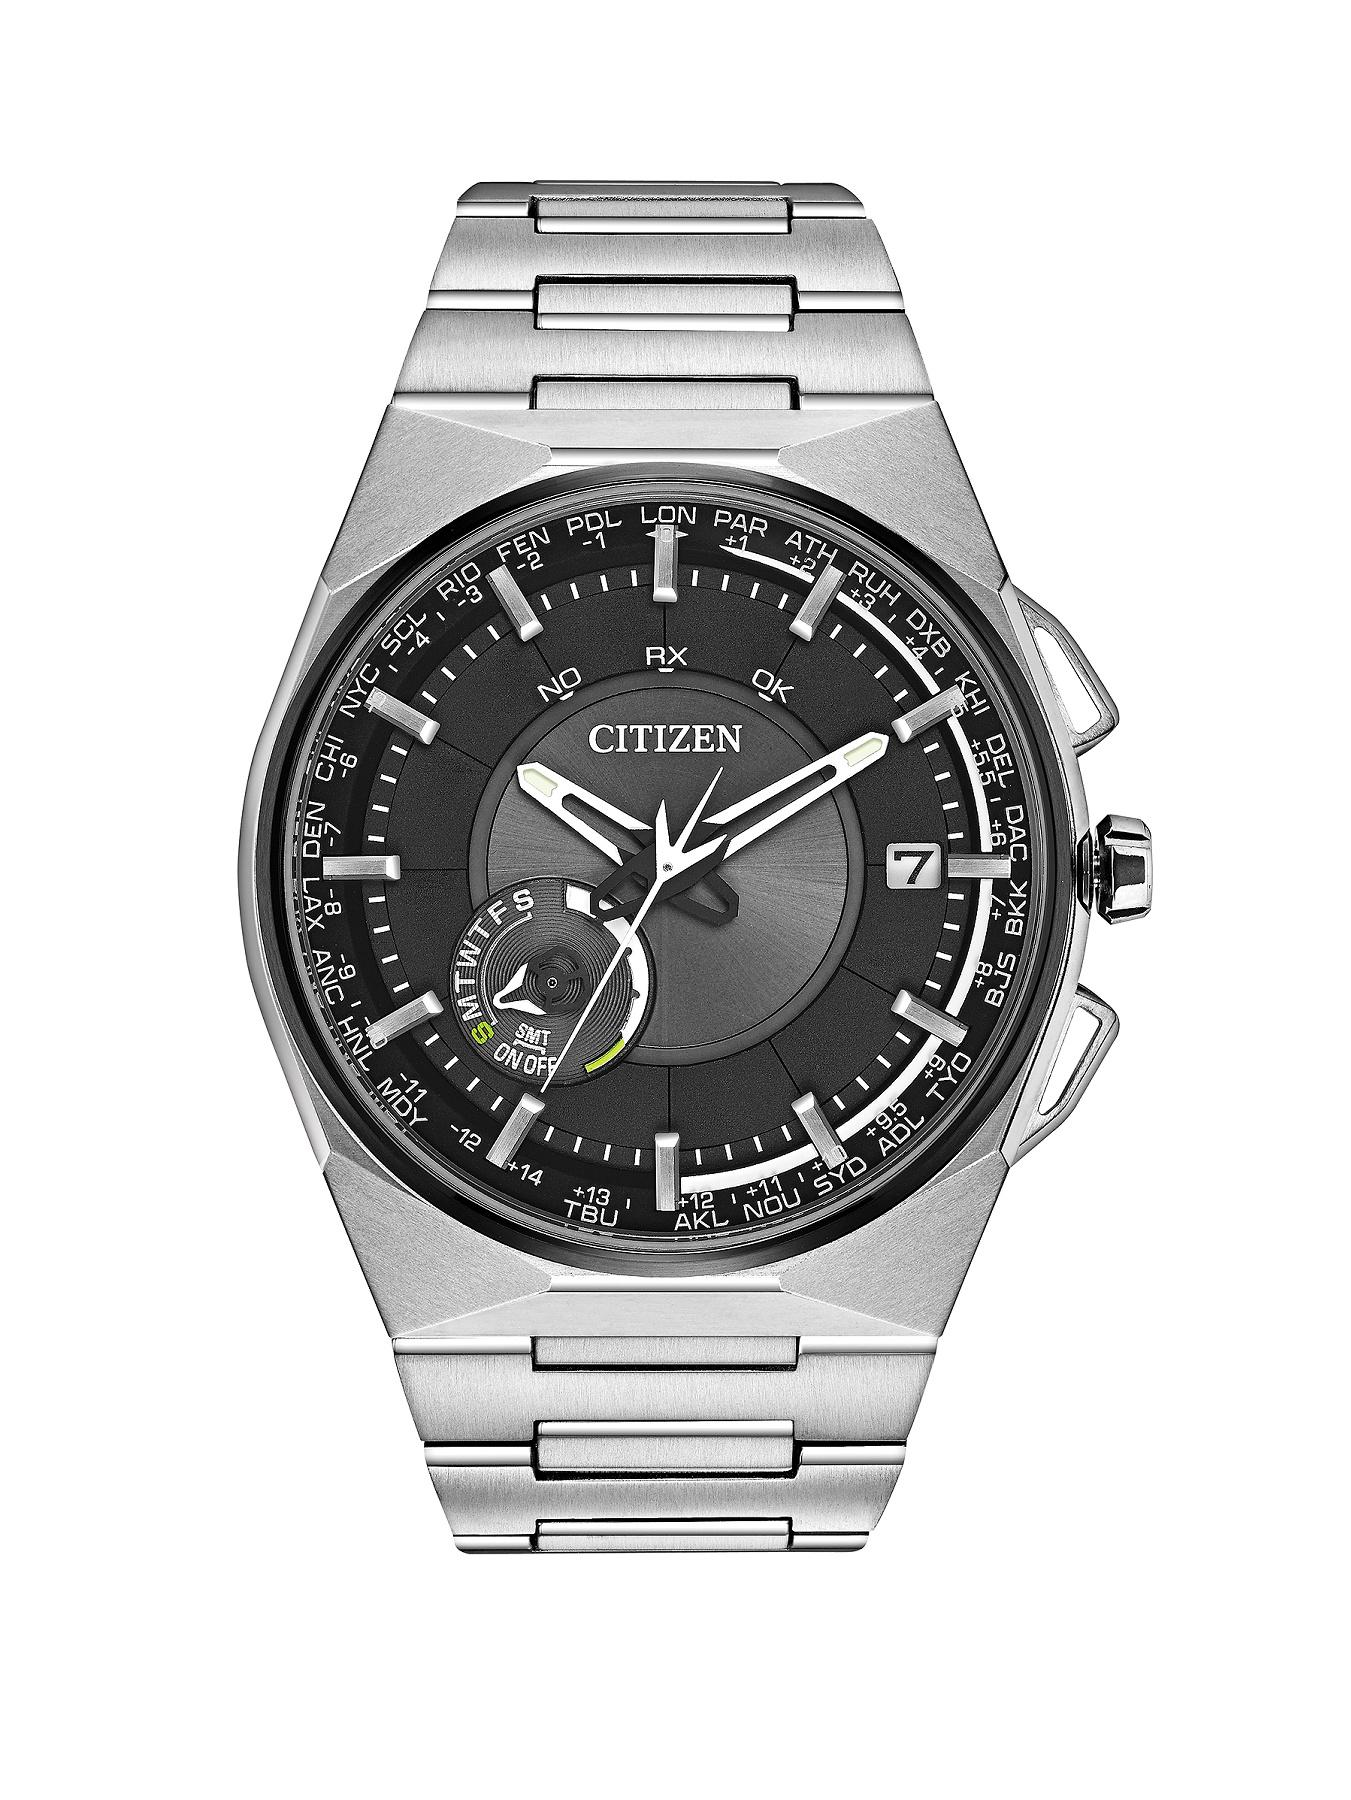 Citizen Eco-Drive Satellite Wave F100 Satellite Timekeeping Bracelet Mens Watch